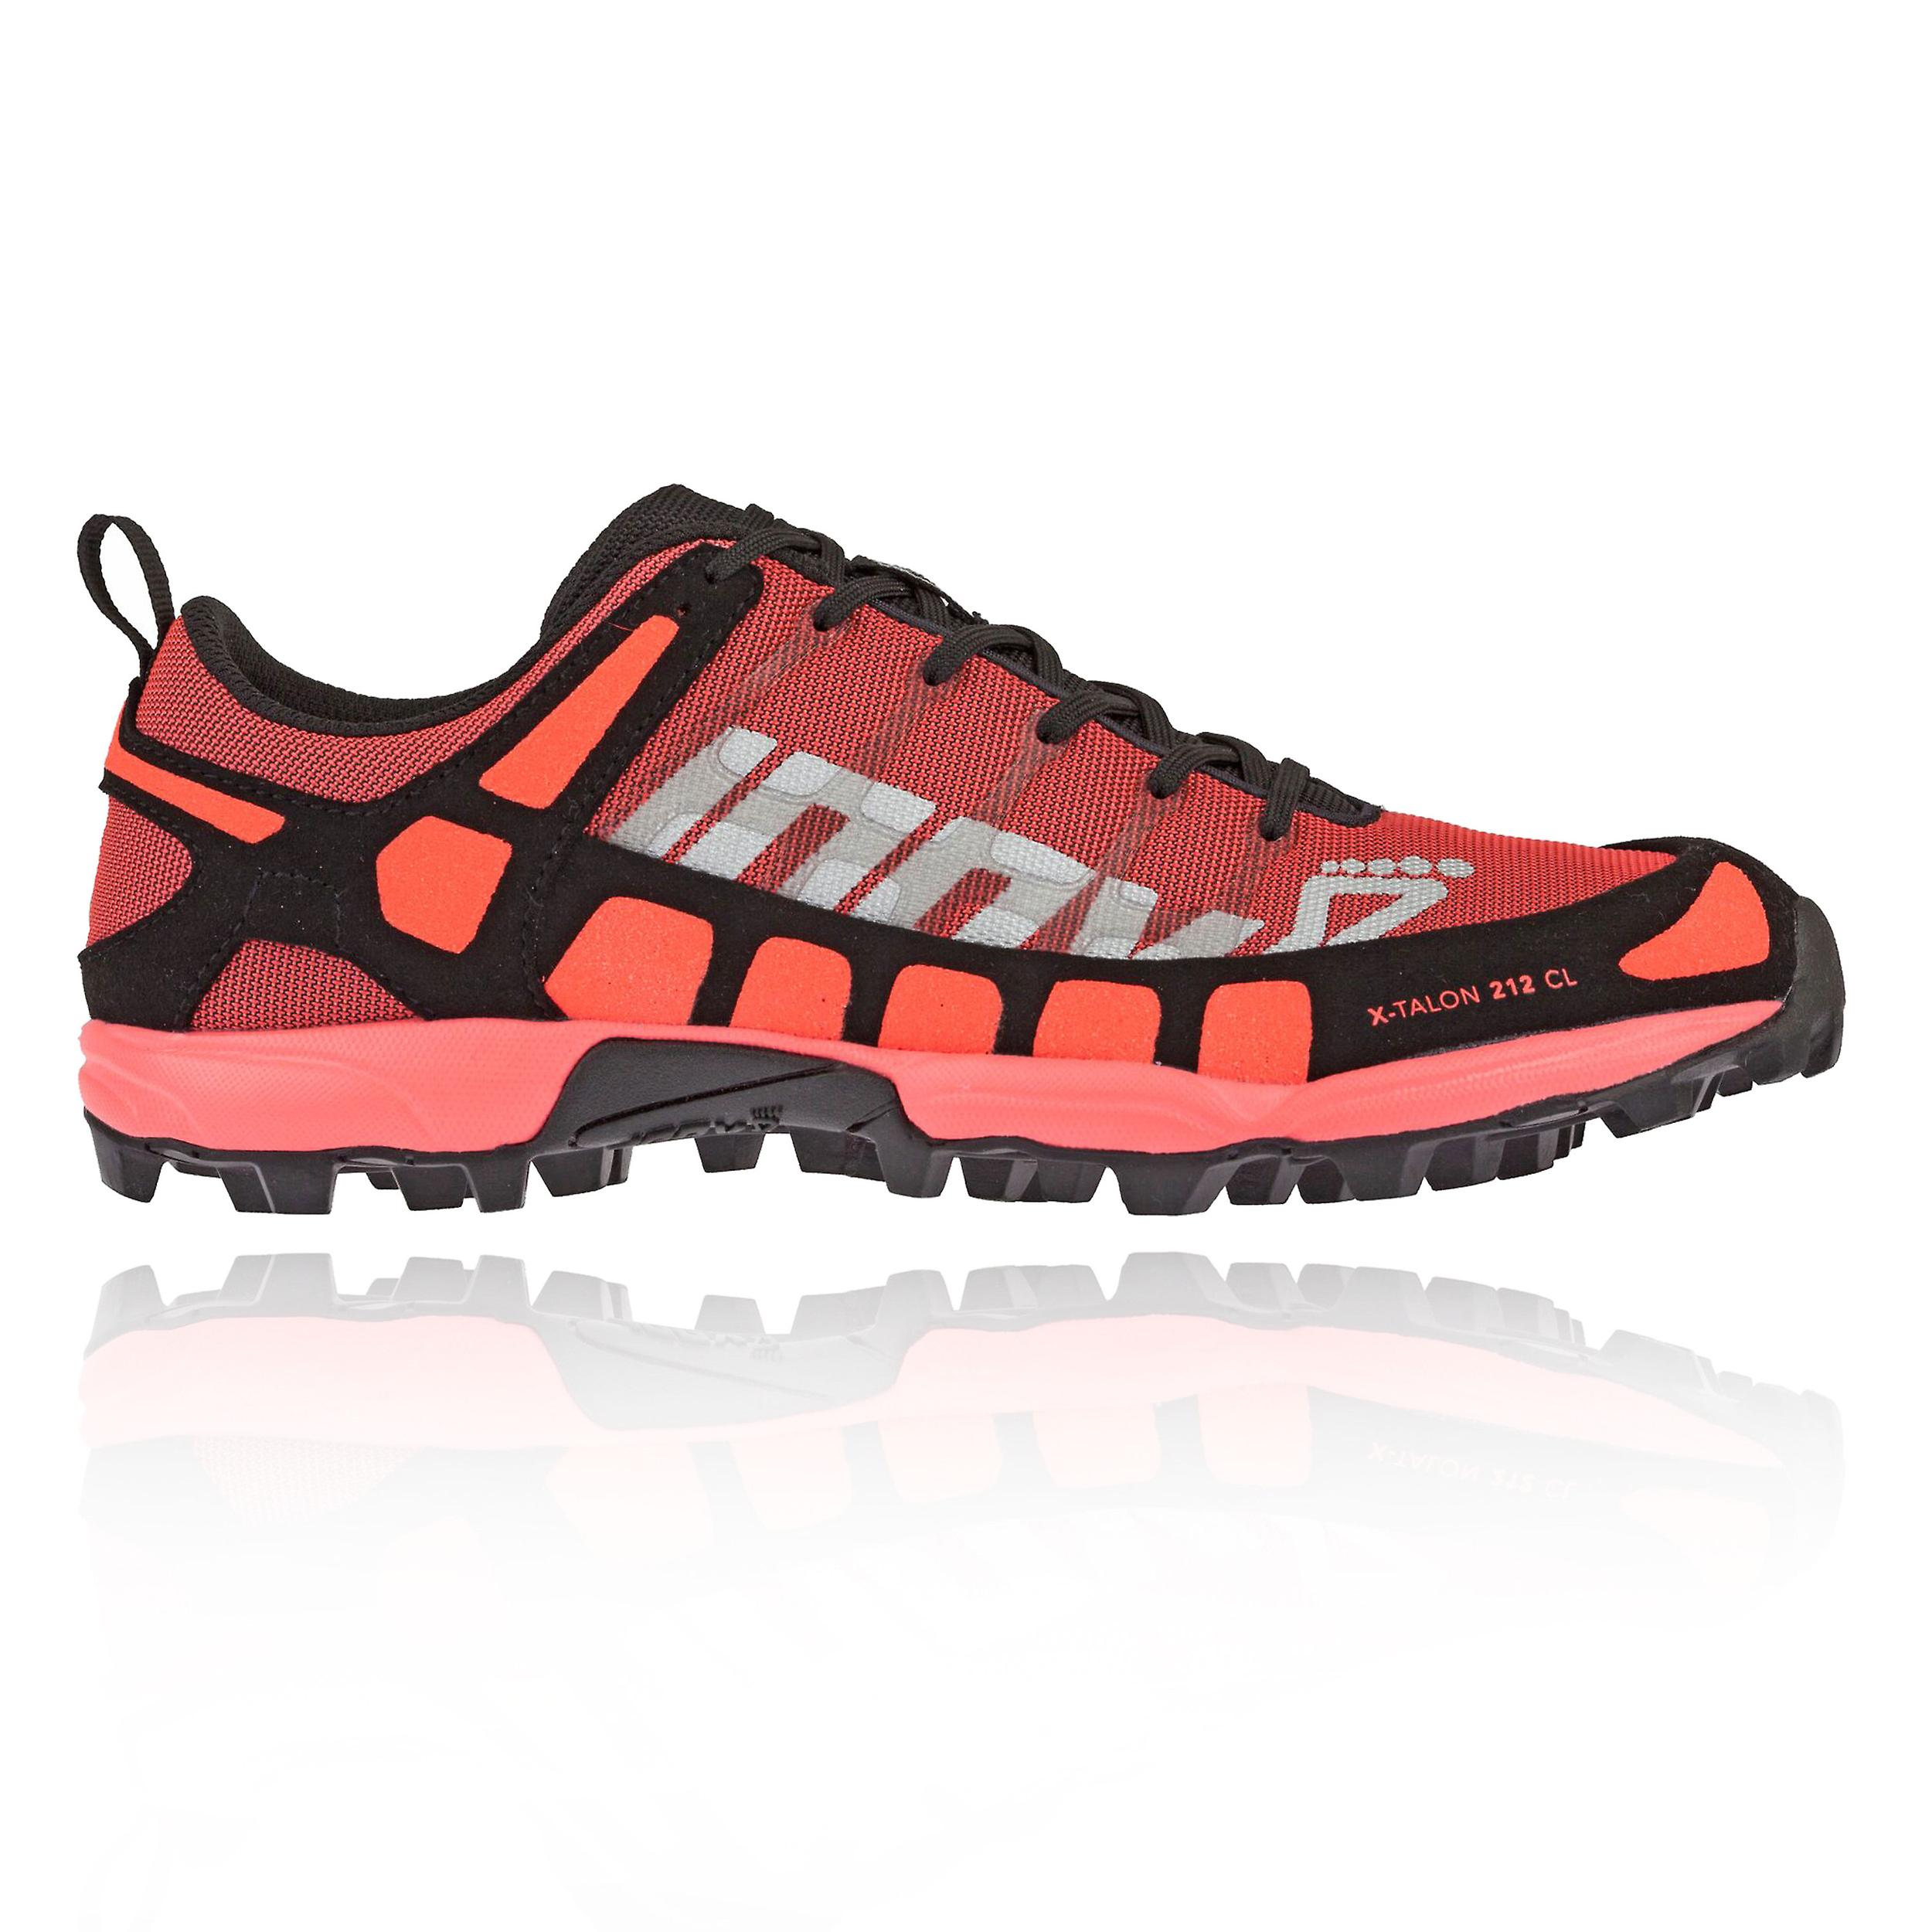 size 40 74950 79b38 Inov8 X-Talon 212 Classic Women's Trail Running Shoes - AW19